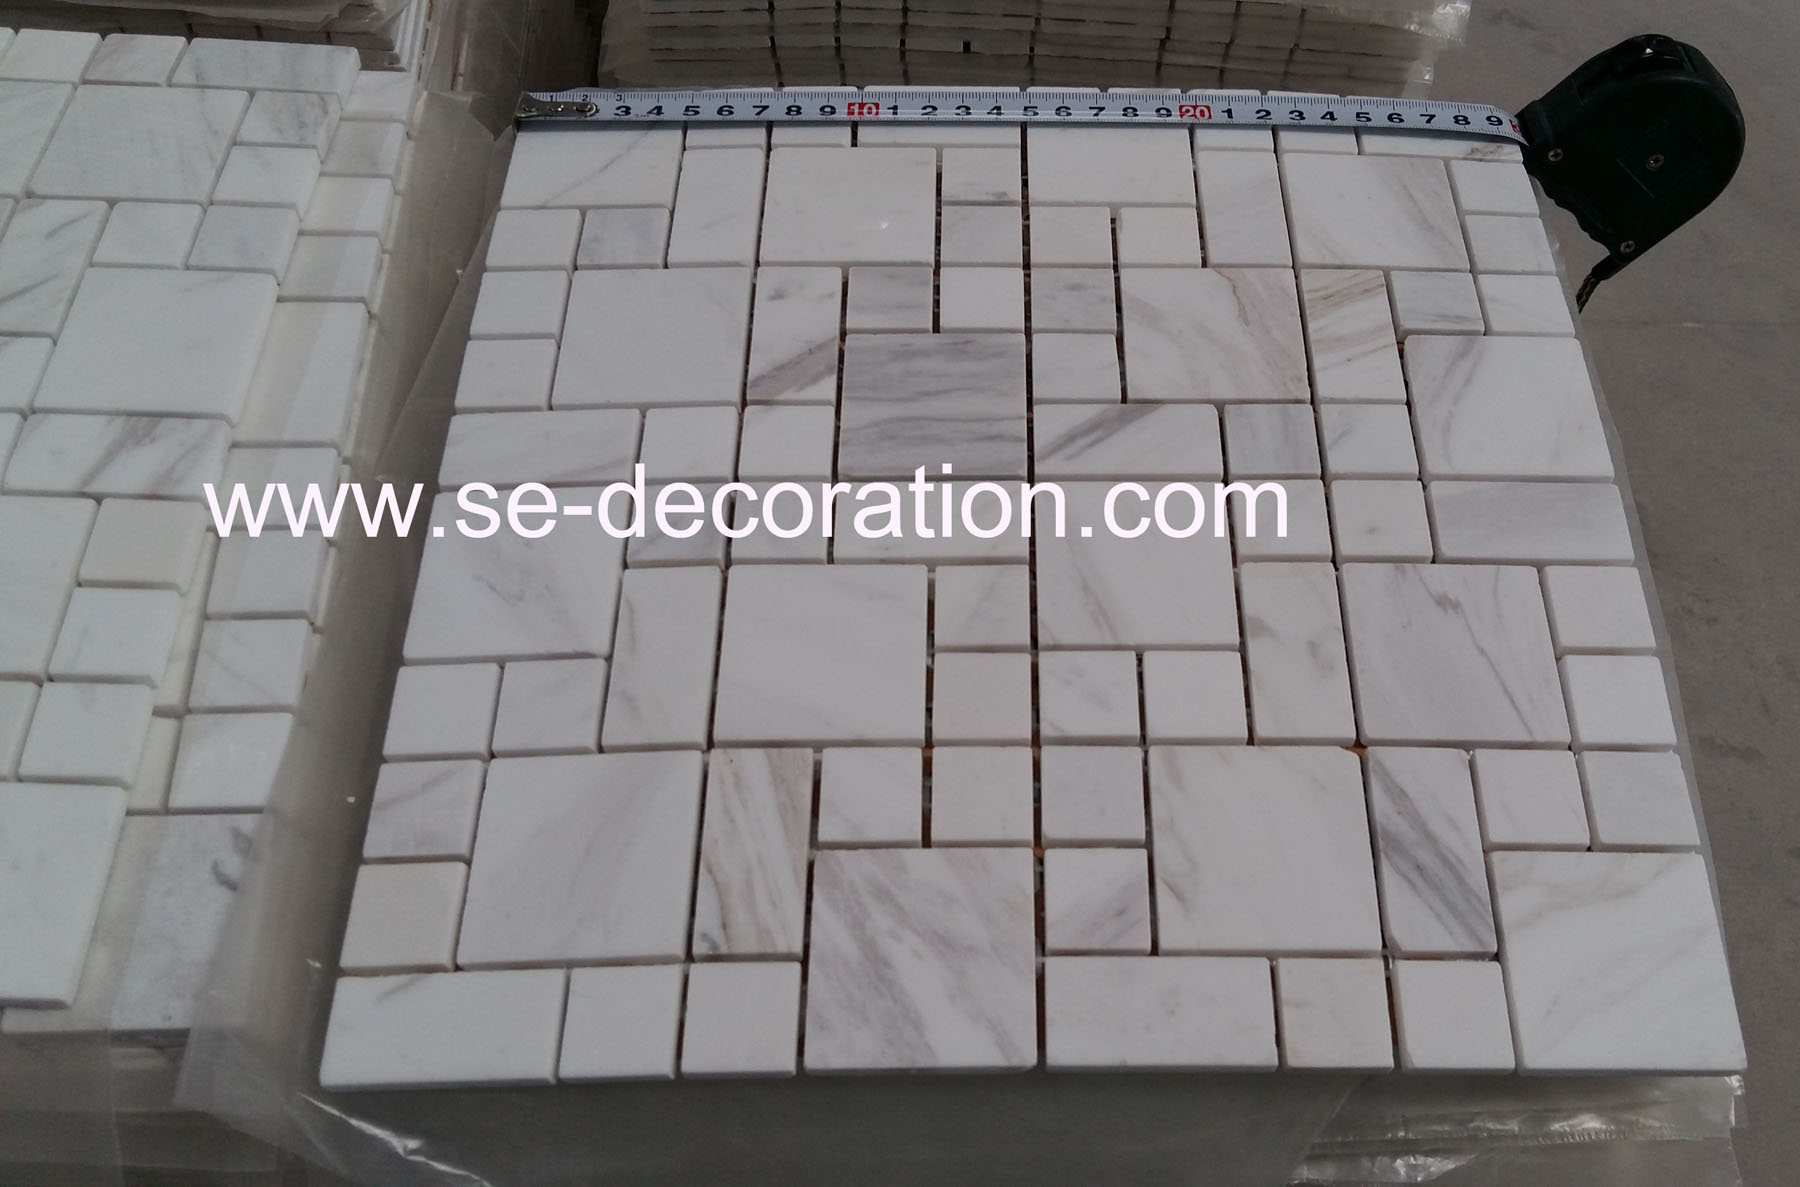 Product name:Volakas White Marble Mosaic